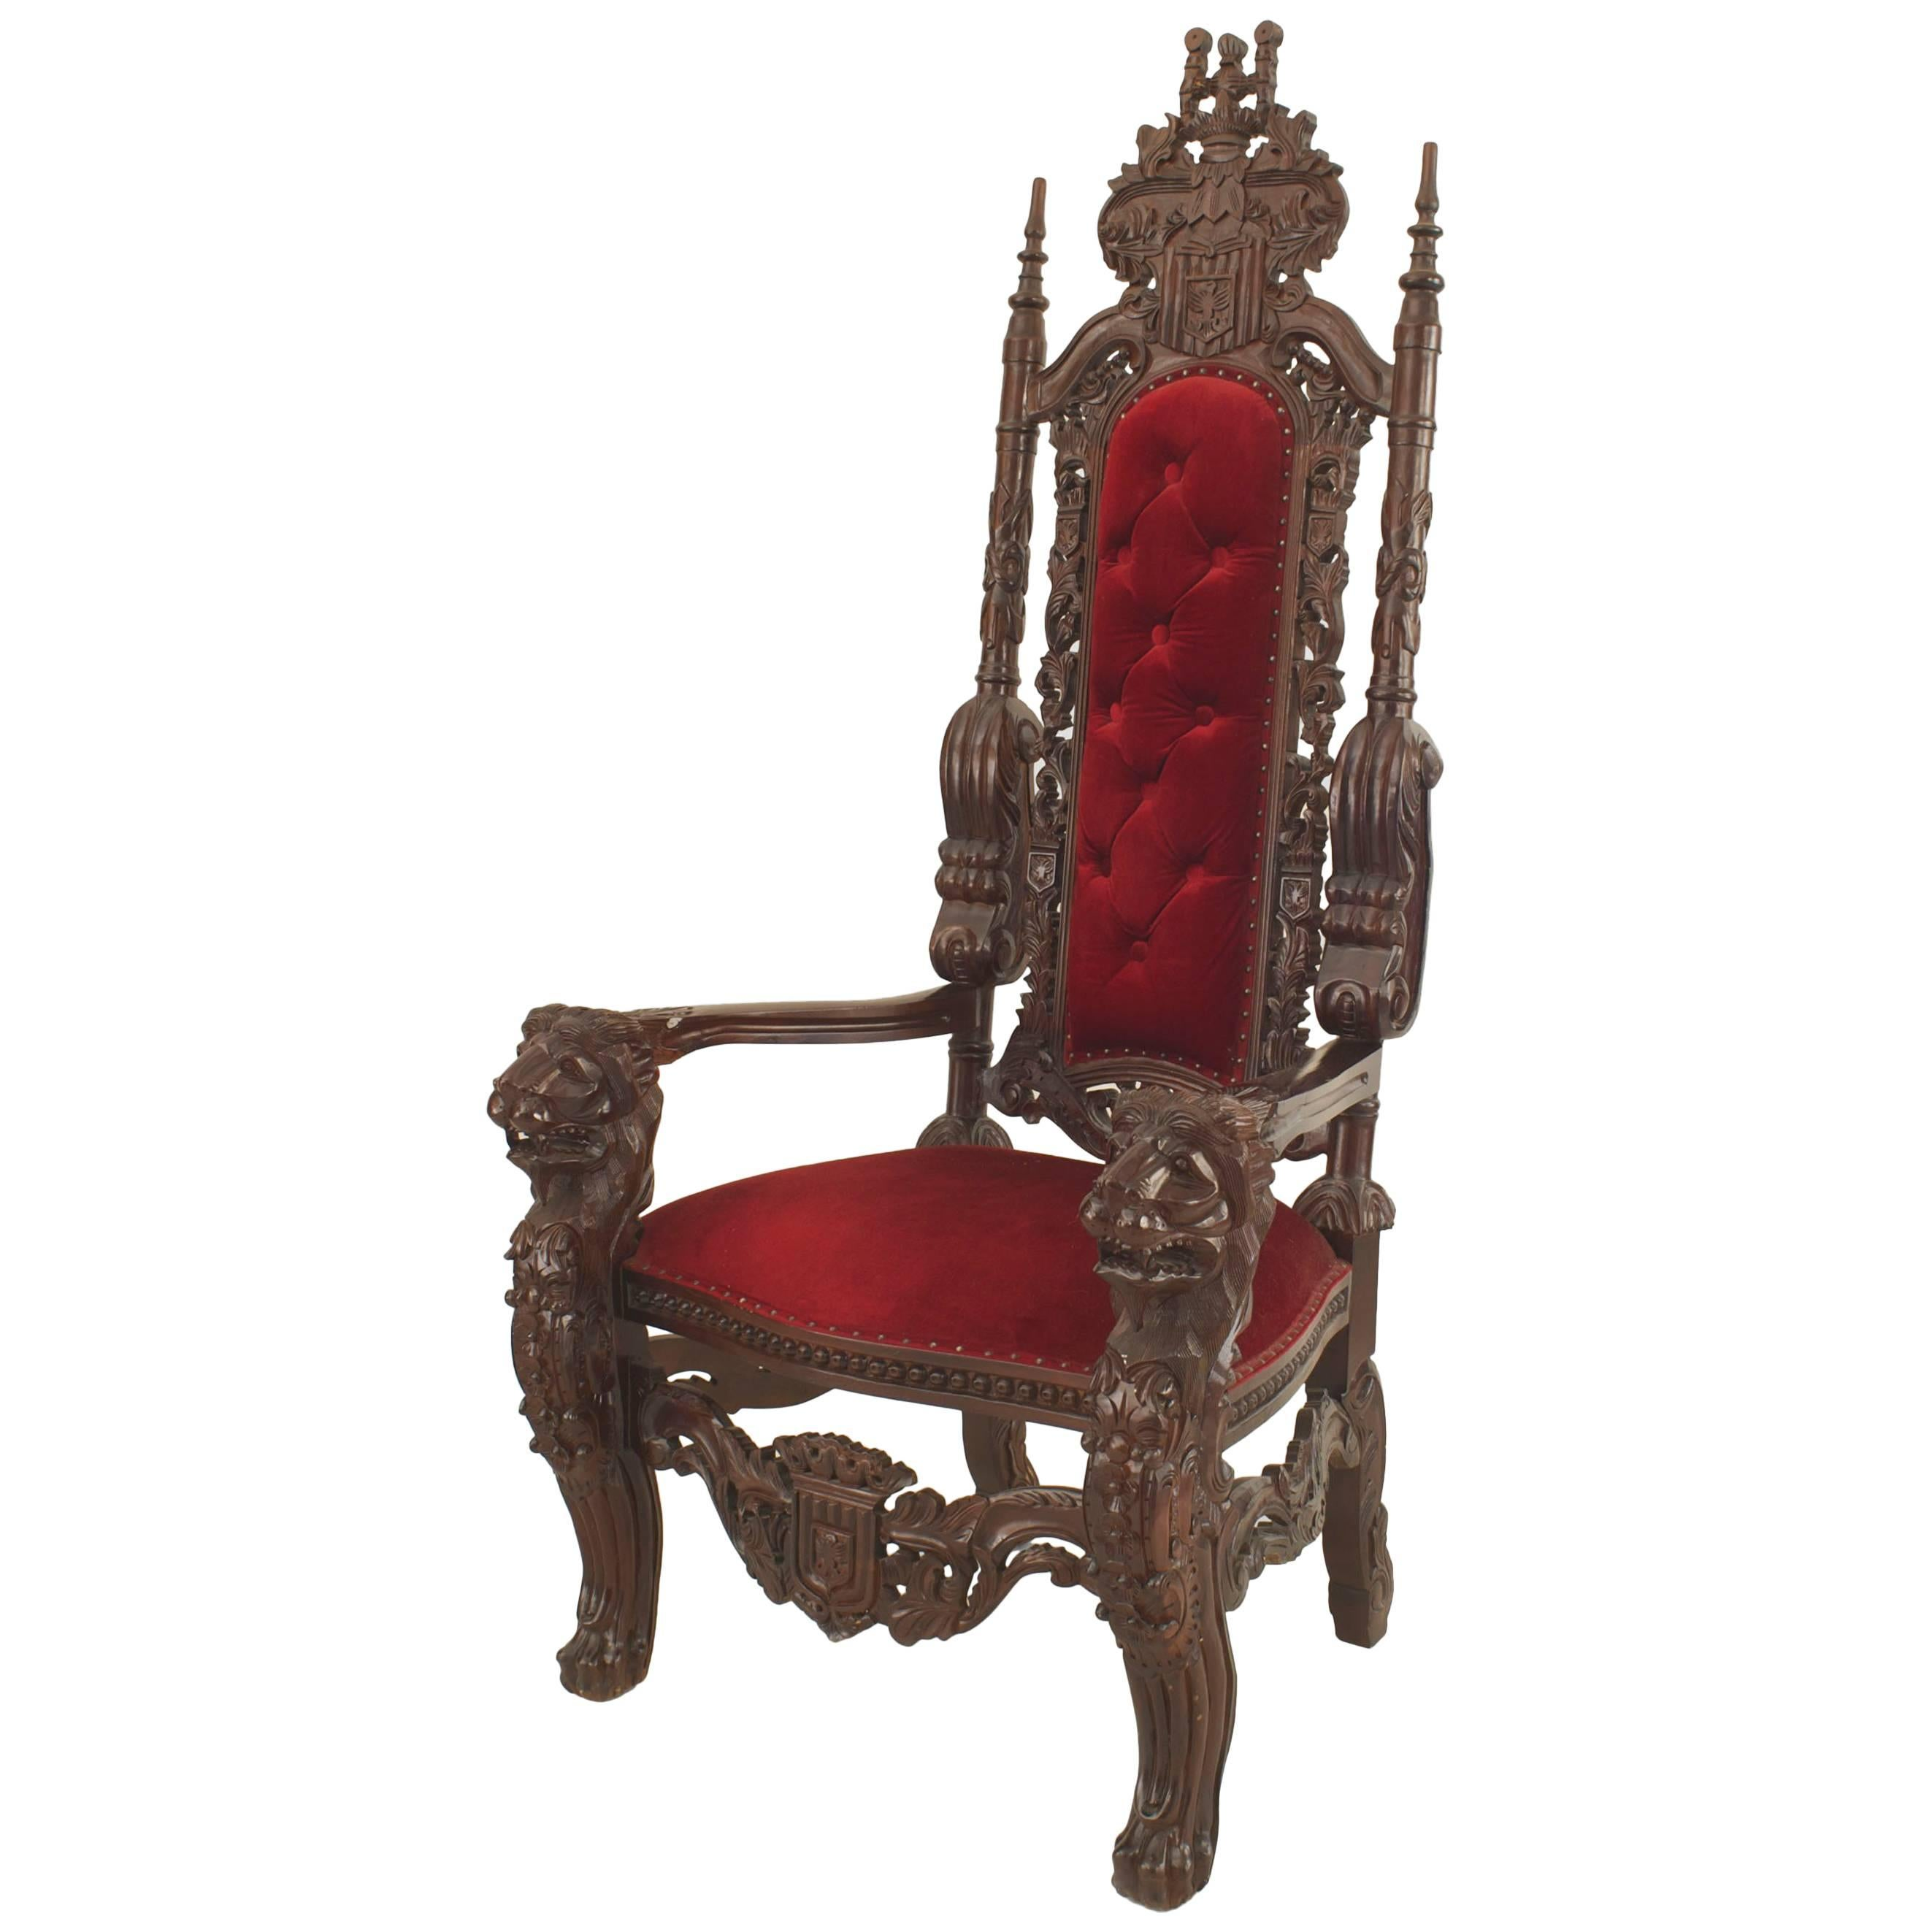 kings chair for sale wooden porch rocking chairs italian renaissance style 20th century mahogany throne